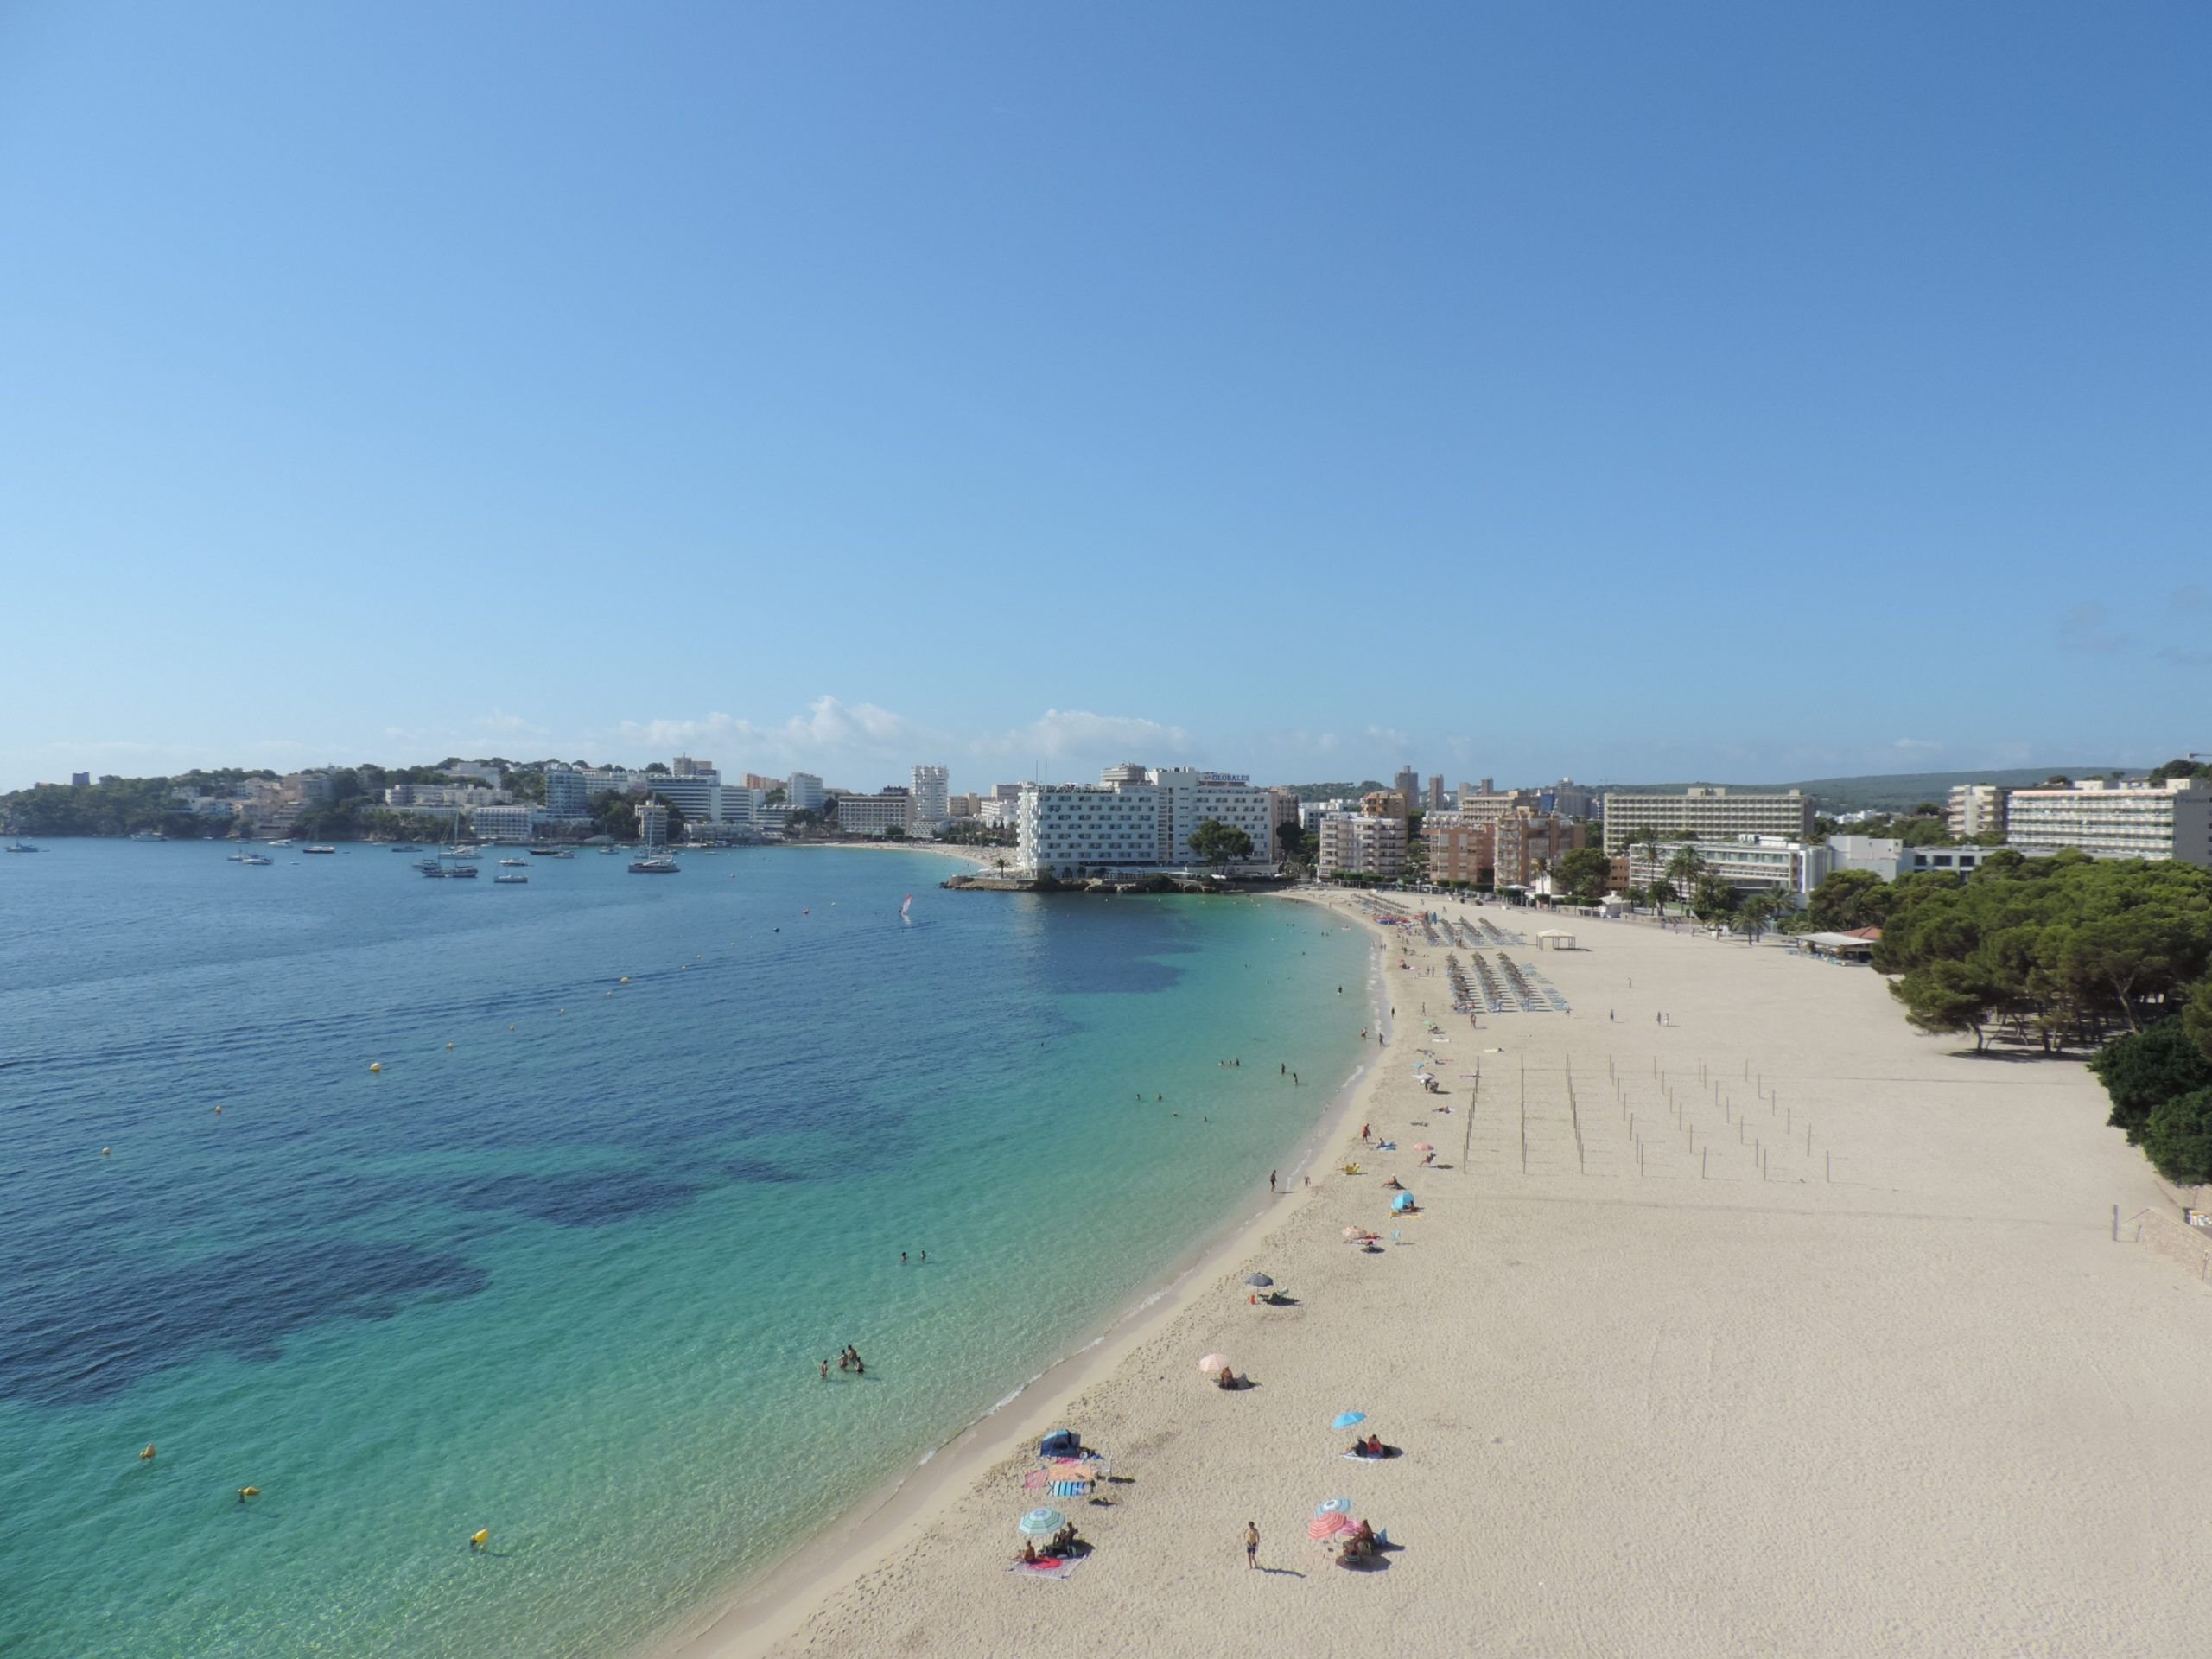 Rent: Palmanova Frontline Beach apartment with stunning views